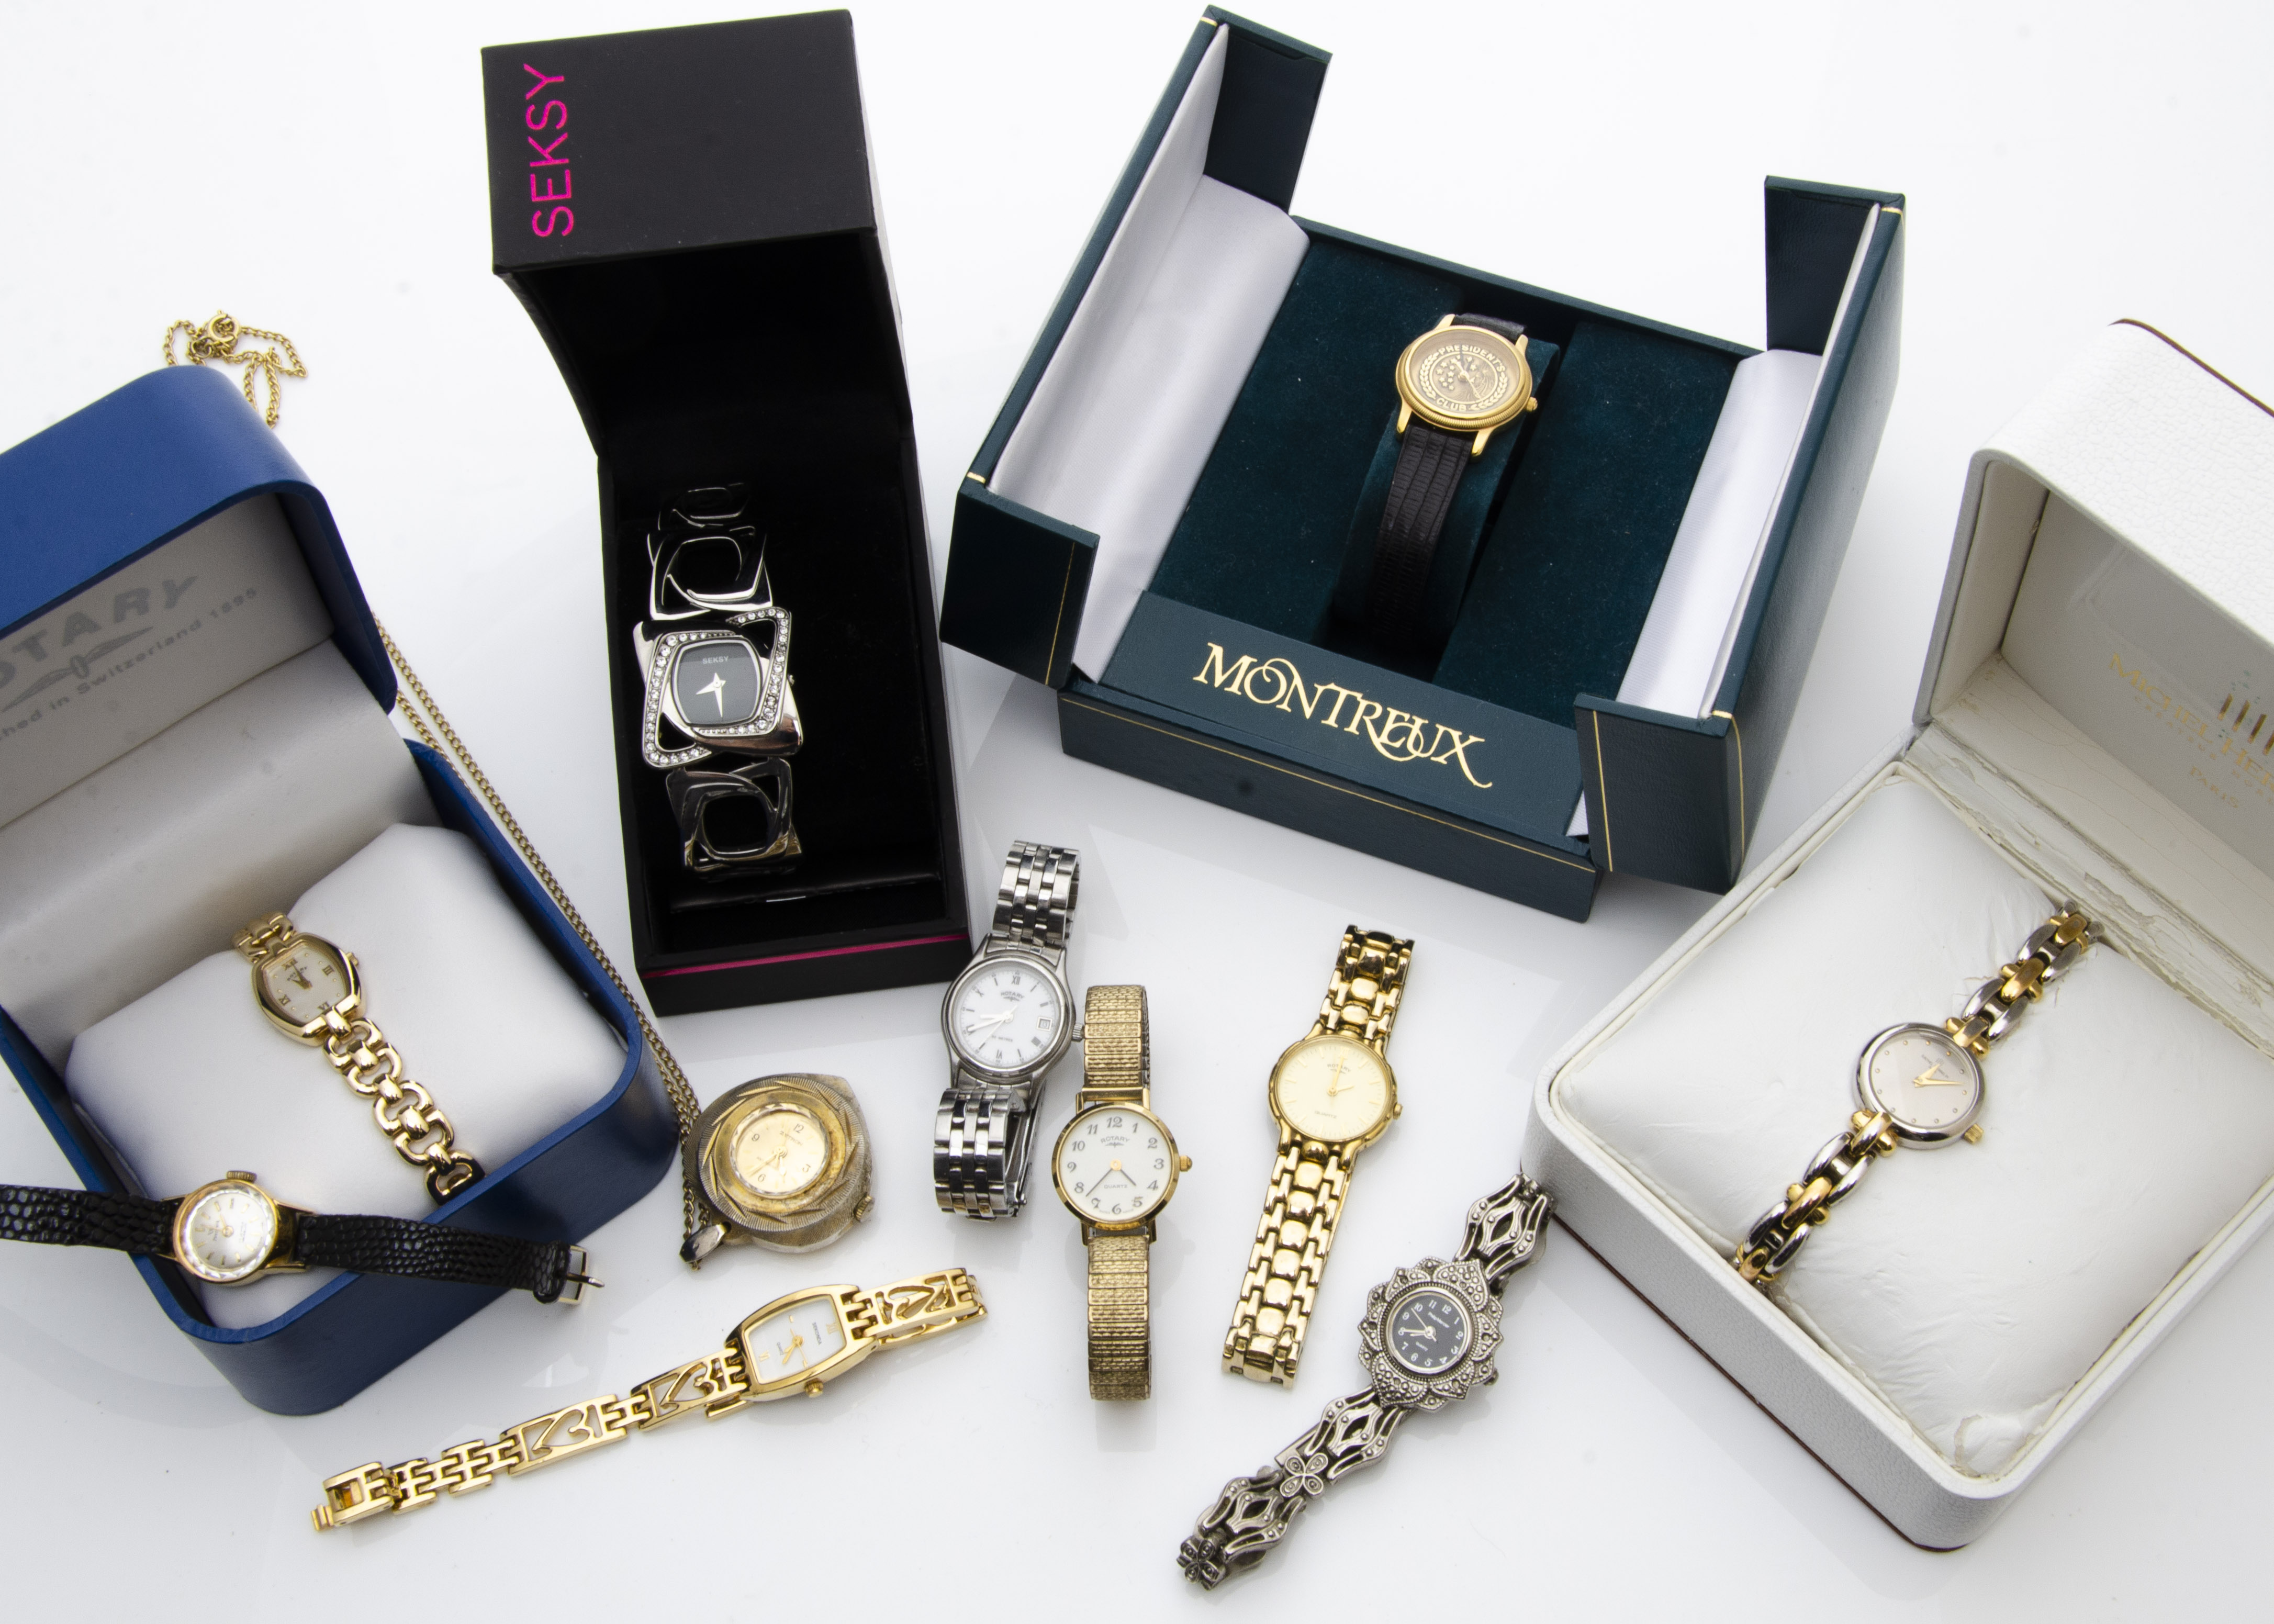 Lot 260 - A collection of modern ladies wristwatches, various makers and styles, some fashion watches,